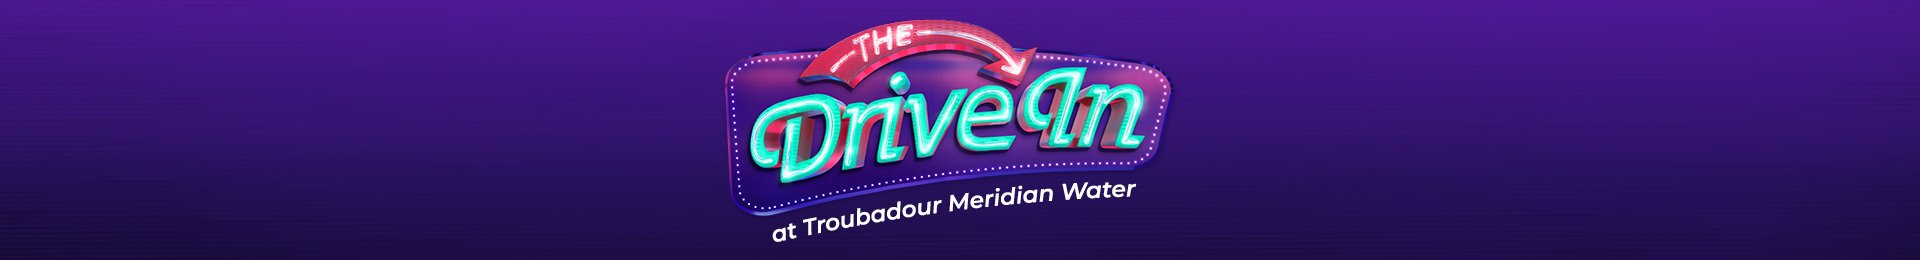 The Drive In Comedy Club with Jamali Maddix banner image